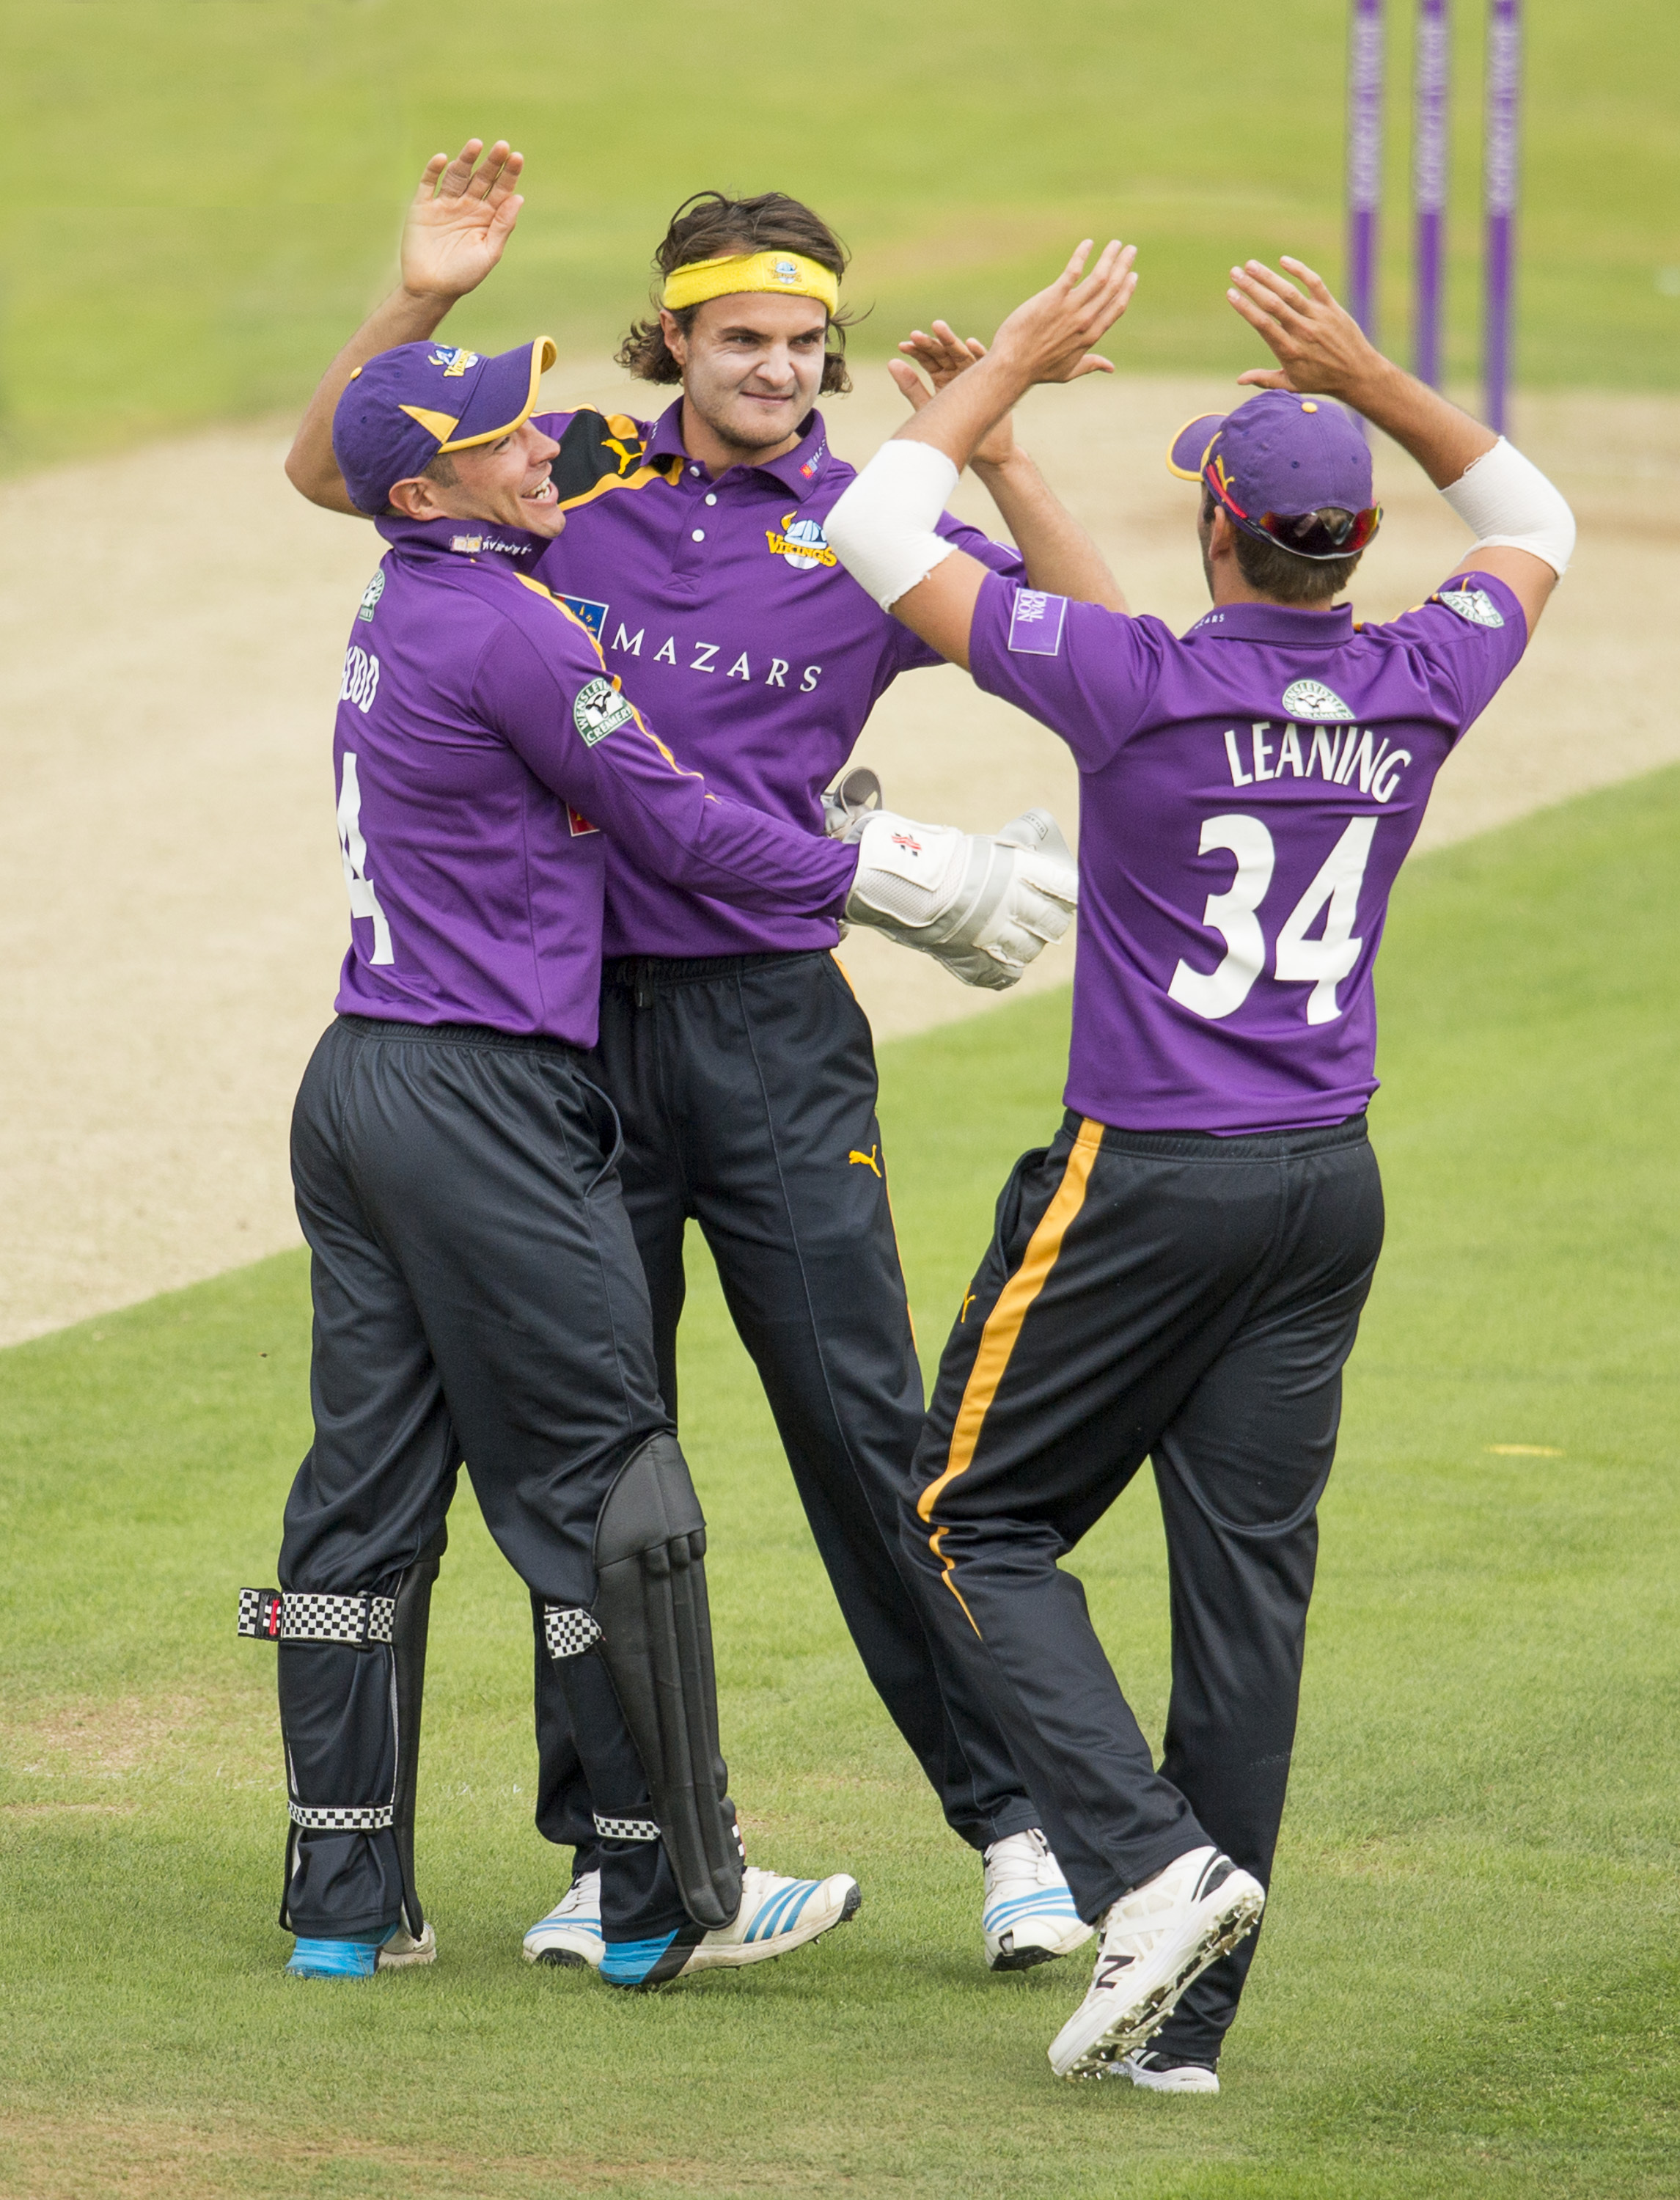 Yorkshire's Andrew Hodd, left, starred with the bat in the Royal London One-day Cup victory at Leicestershire, while Jack Brooks, centre, took two wickets and Jack Leaning, right, contributed runs